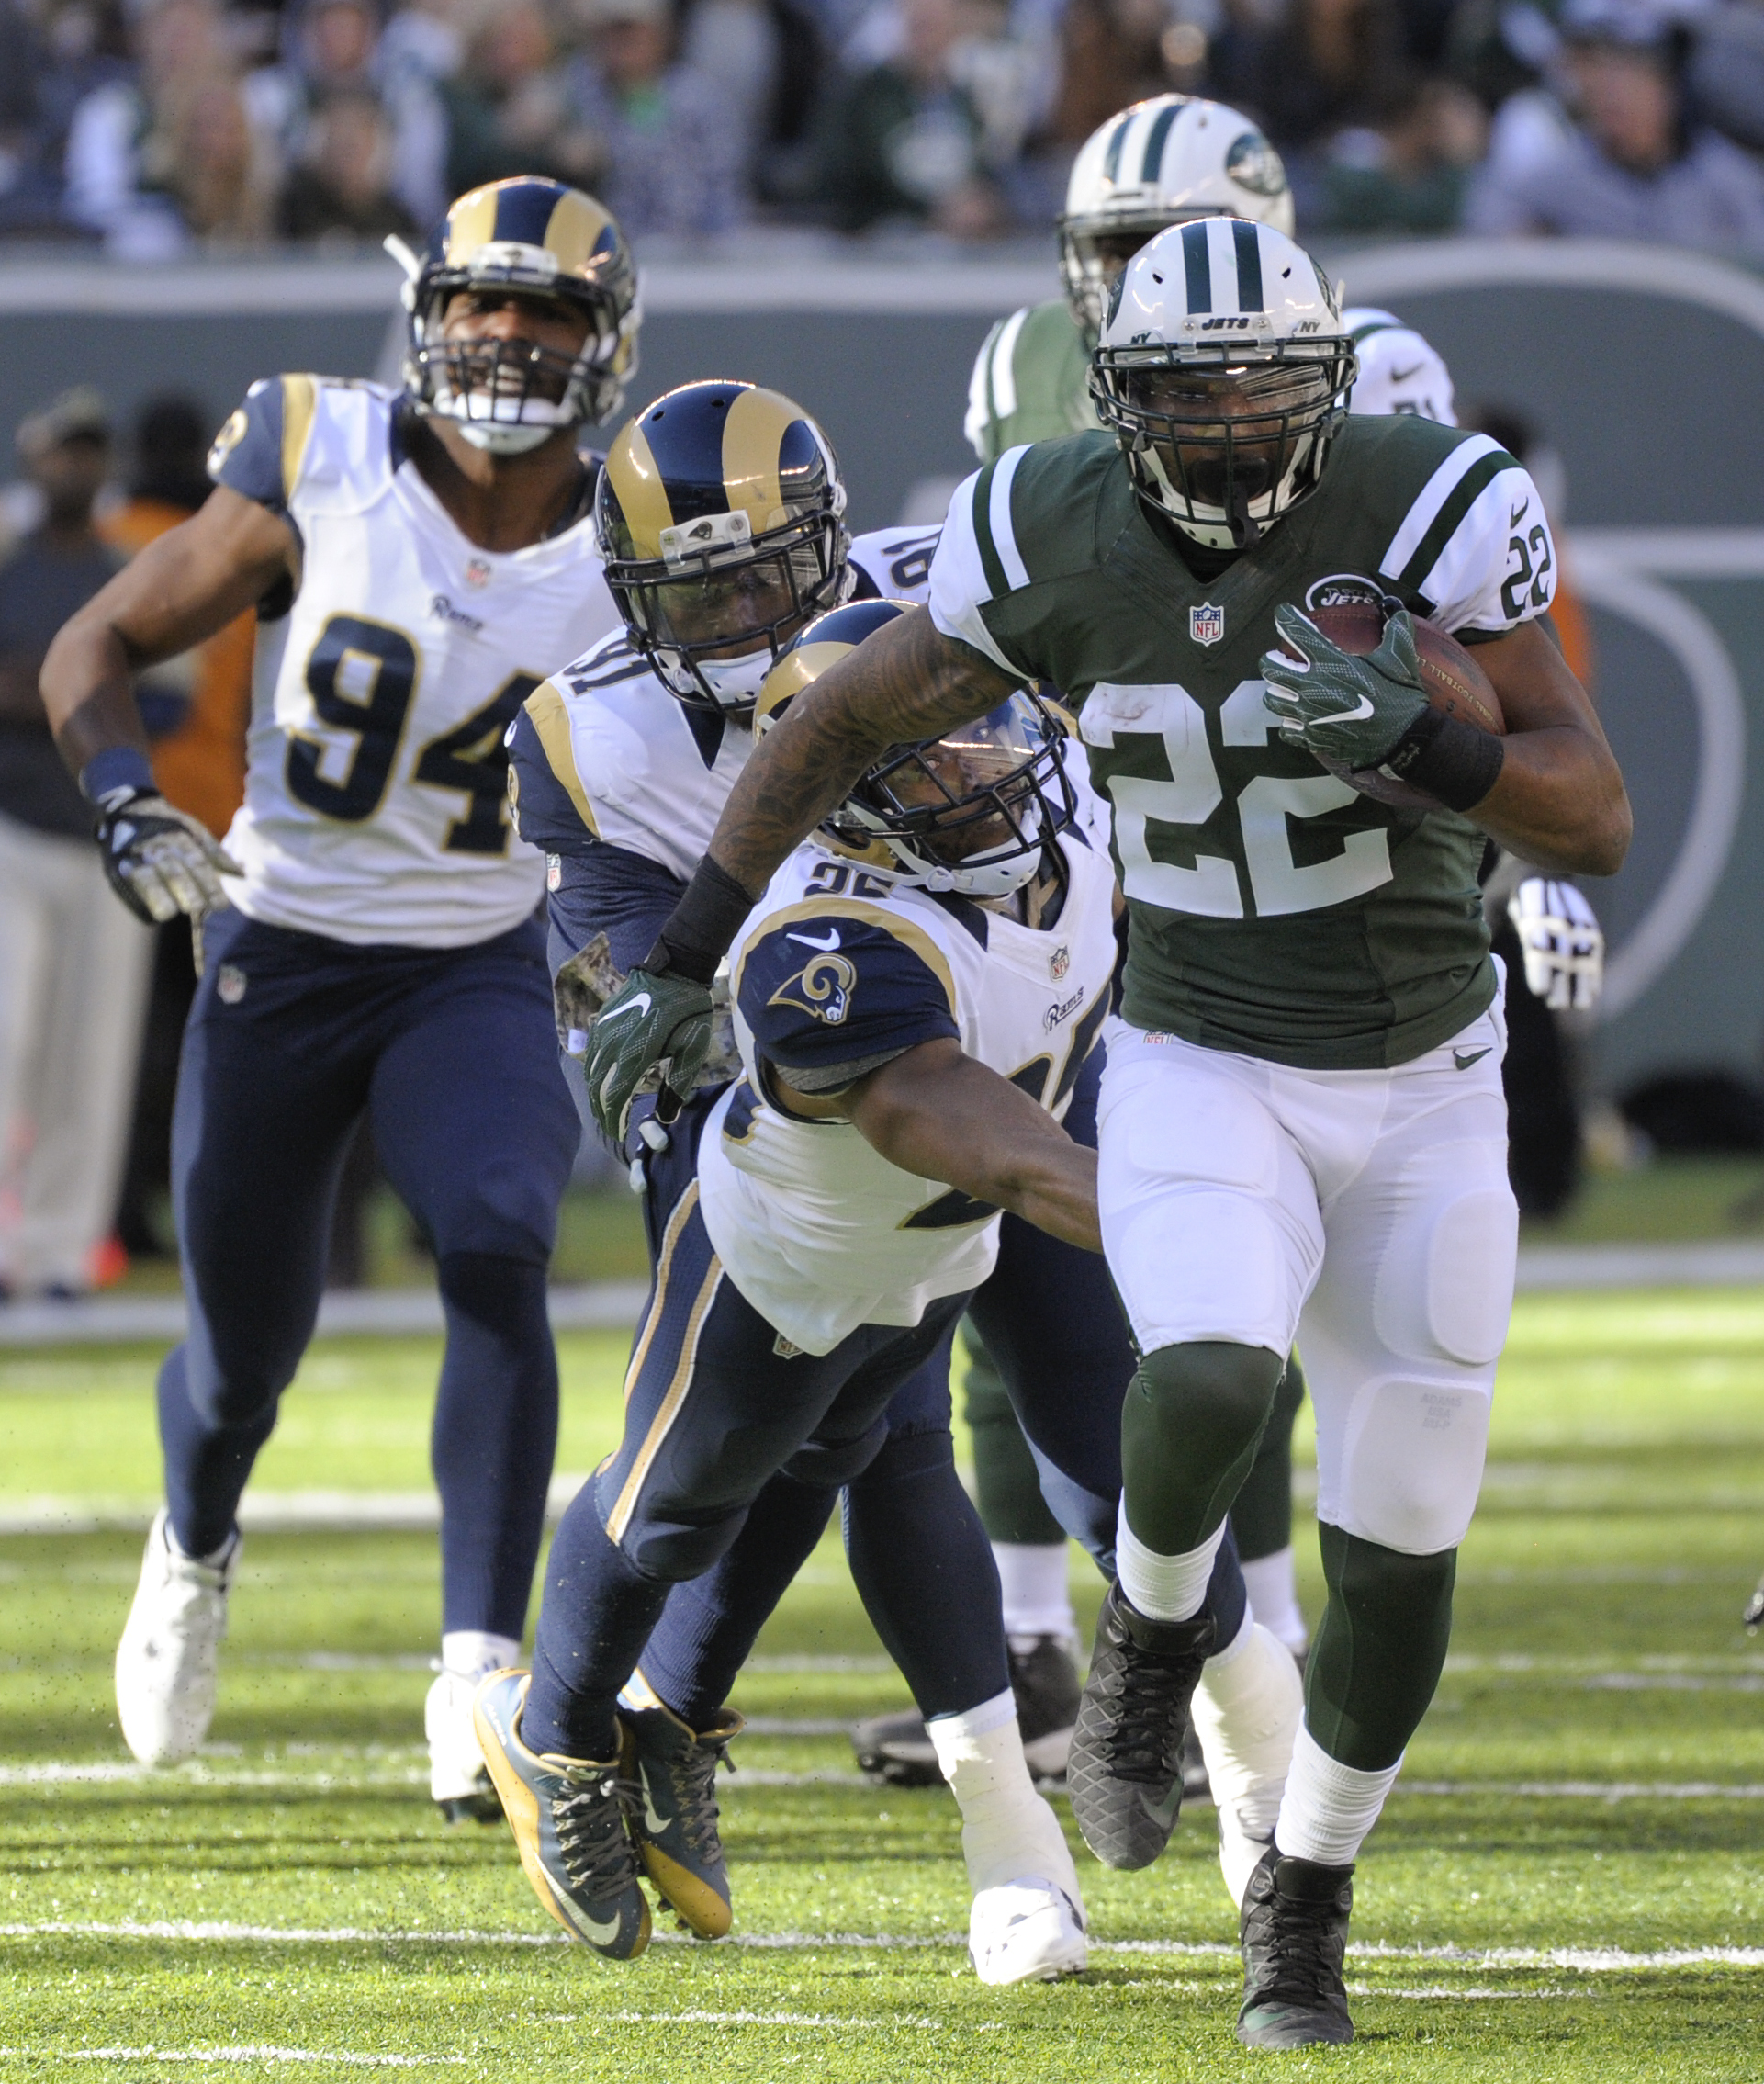 New York Jets running back Matt Forte (22) runs the ball against the Los Angeles Rams during the second quarter of an NFL football game, Sunday, Nov. 13, 2016, in East Rutherford, N.J. (AP Photo/Bill Kostroun)